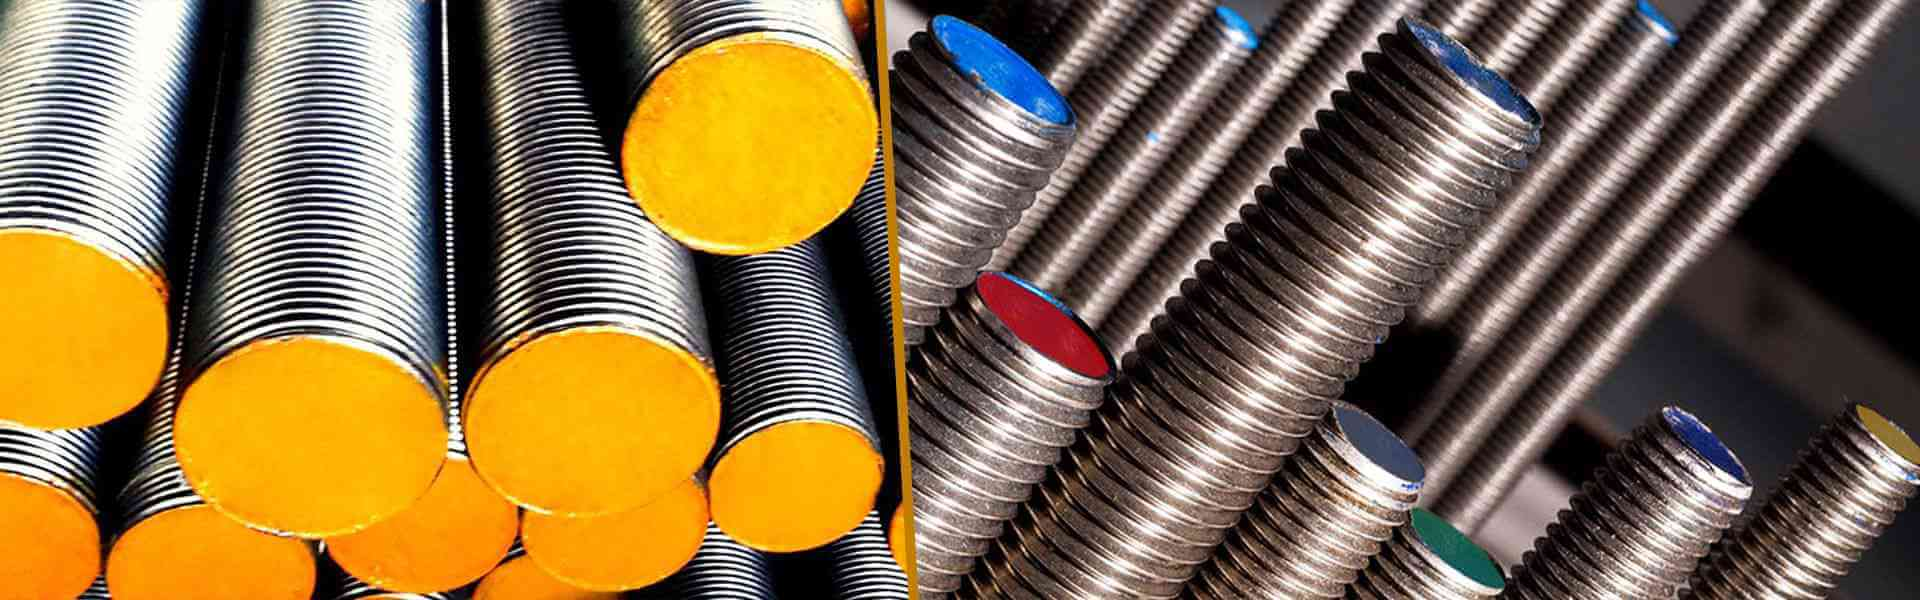 Metal Fasteners Mfr  Co  Ltd  | fasteners manufacturer Saudi